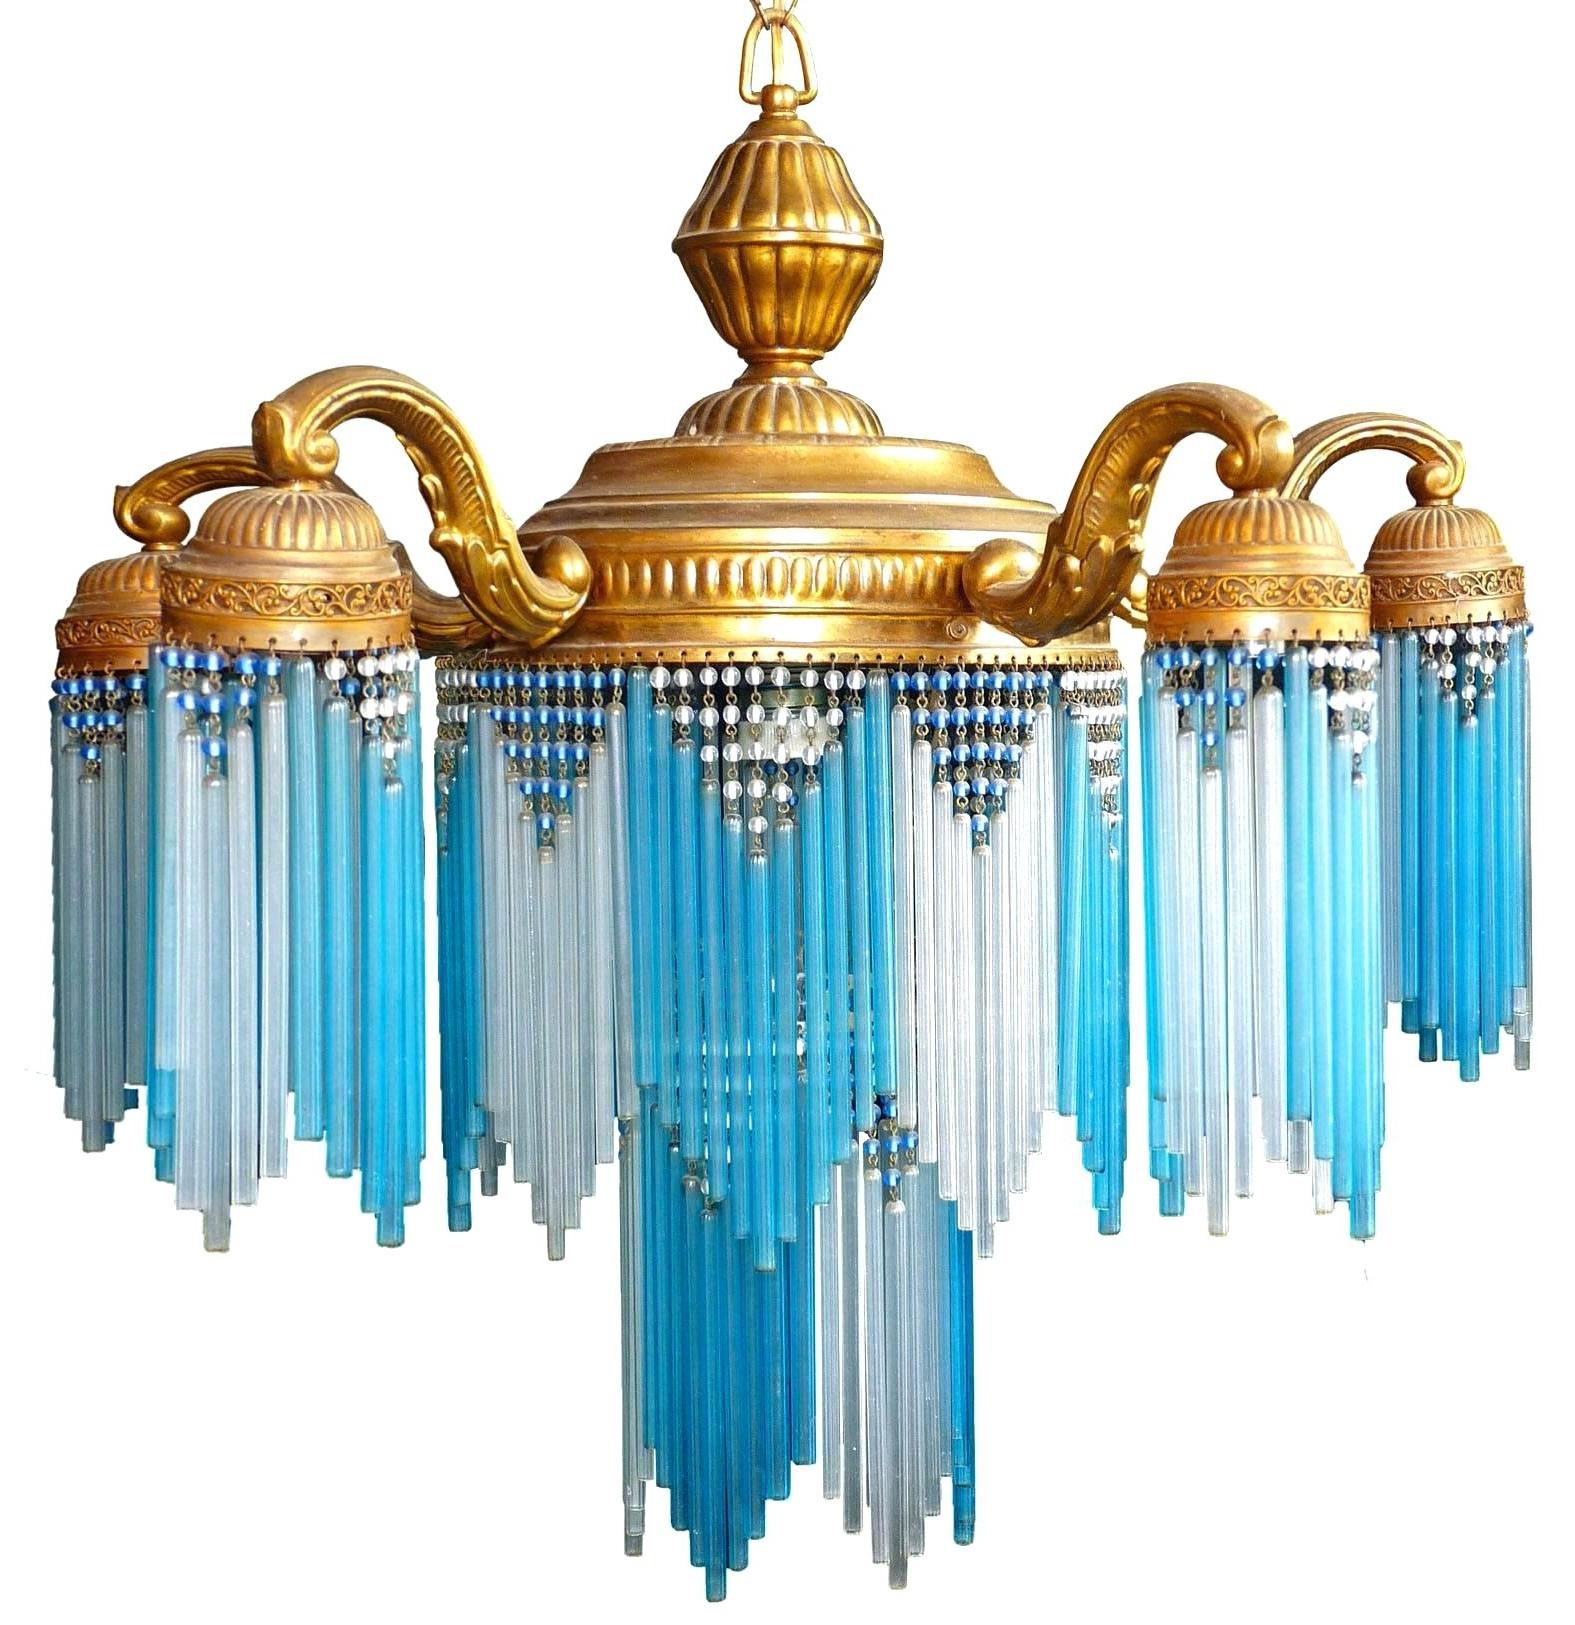 2019 Lighting : Regina Andrew Turquoise Chandelier Light Wood Diy Small In Small Turquoise Beaded Chandeliers (View 16 of 20)